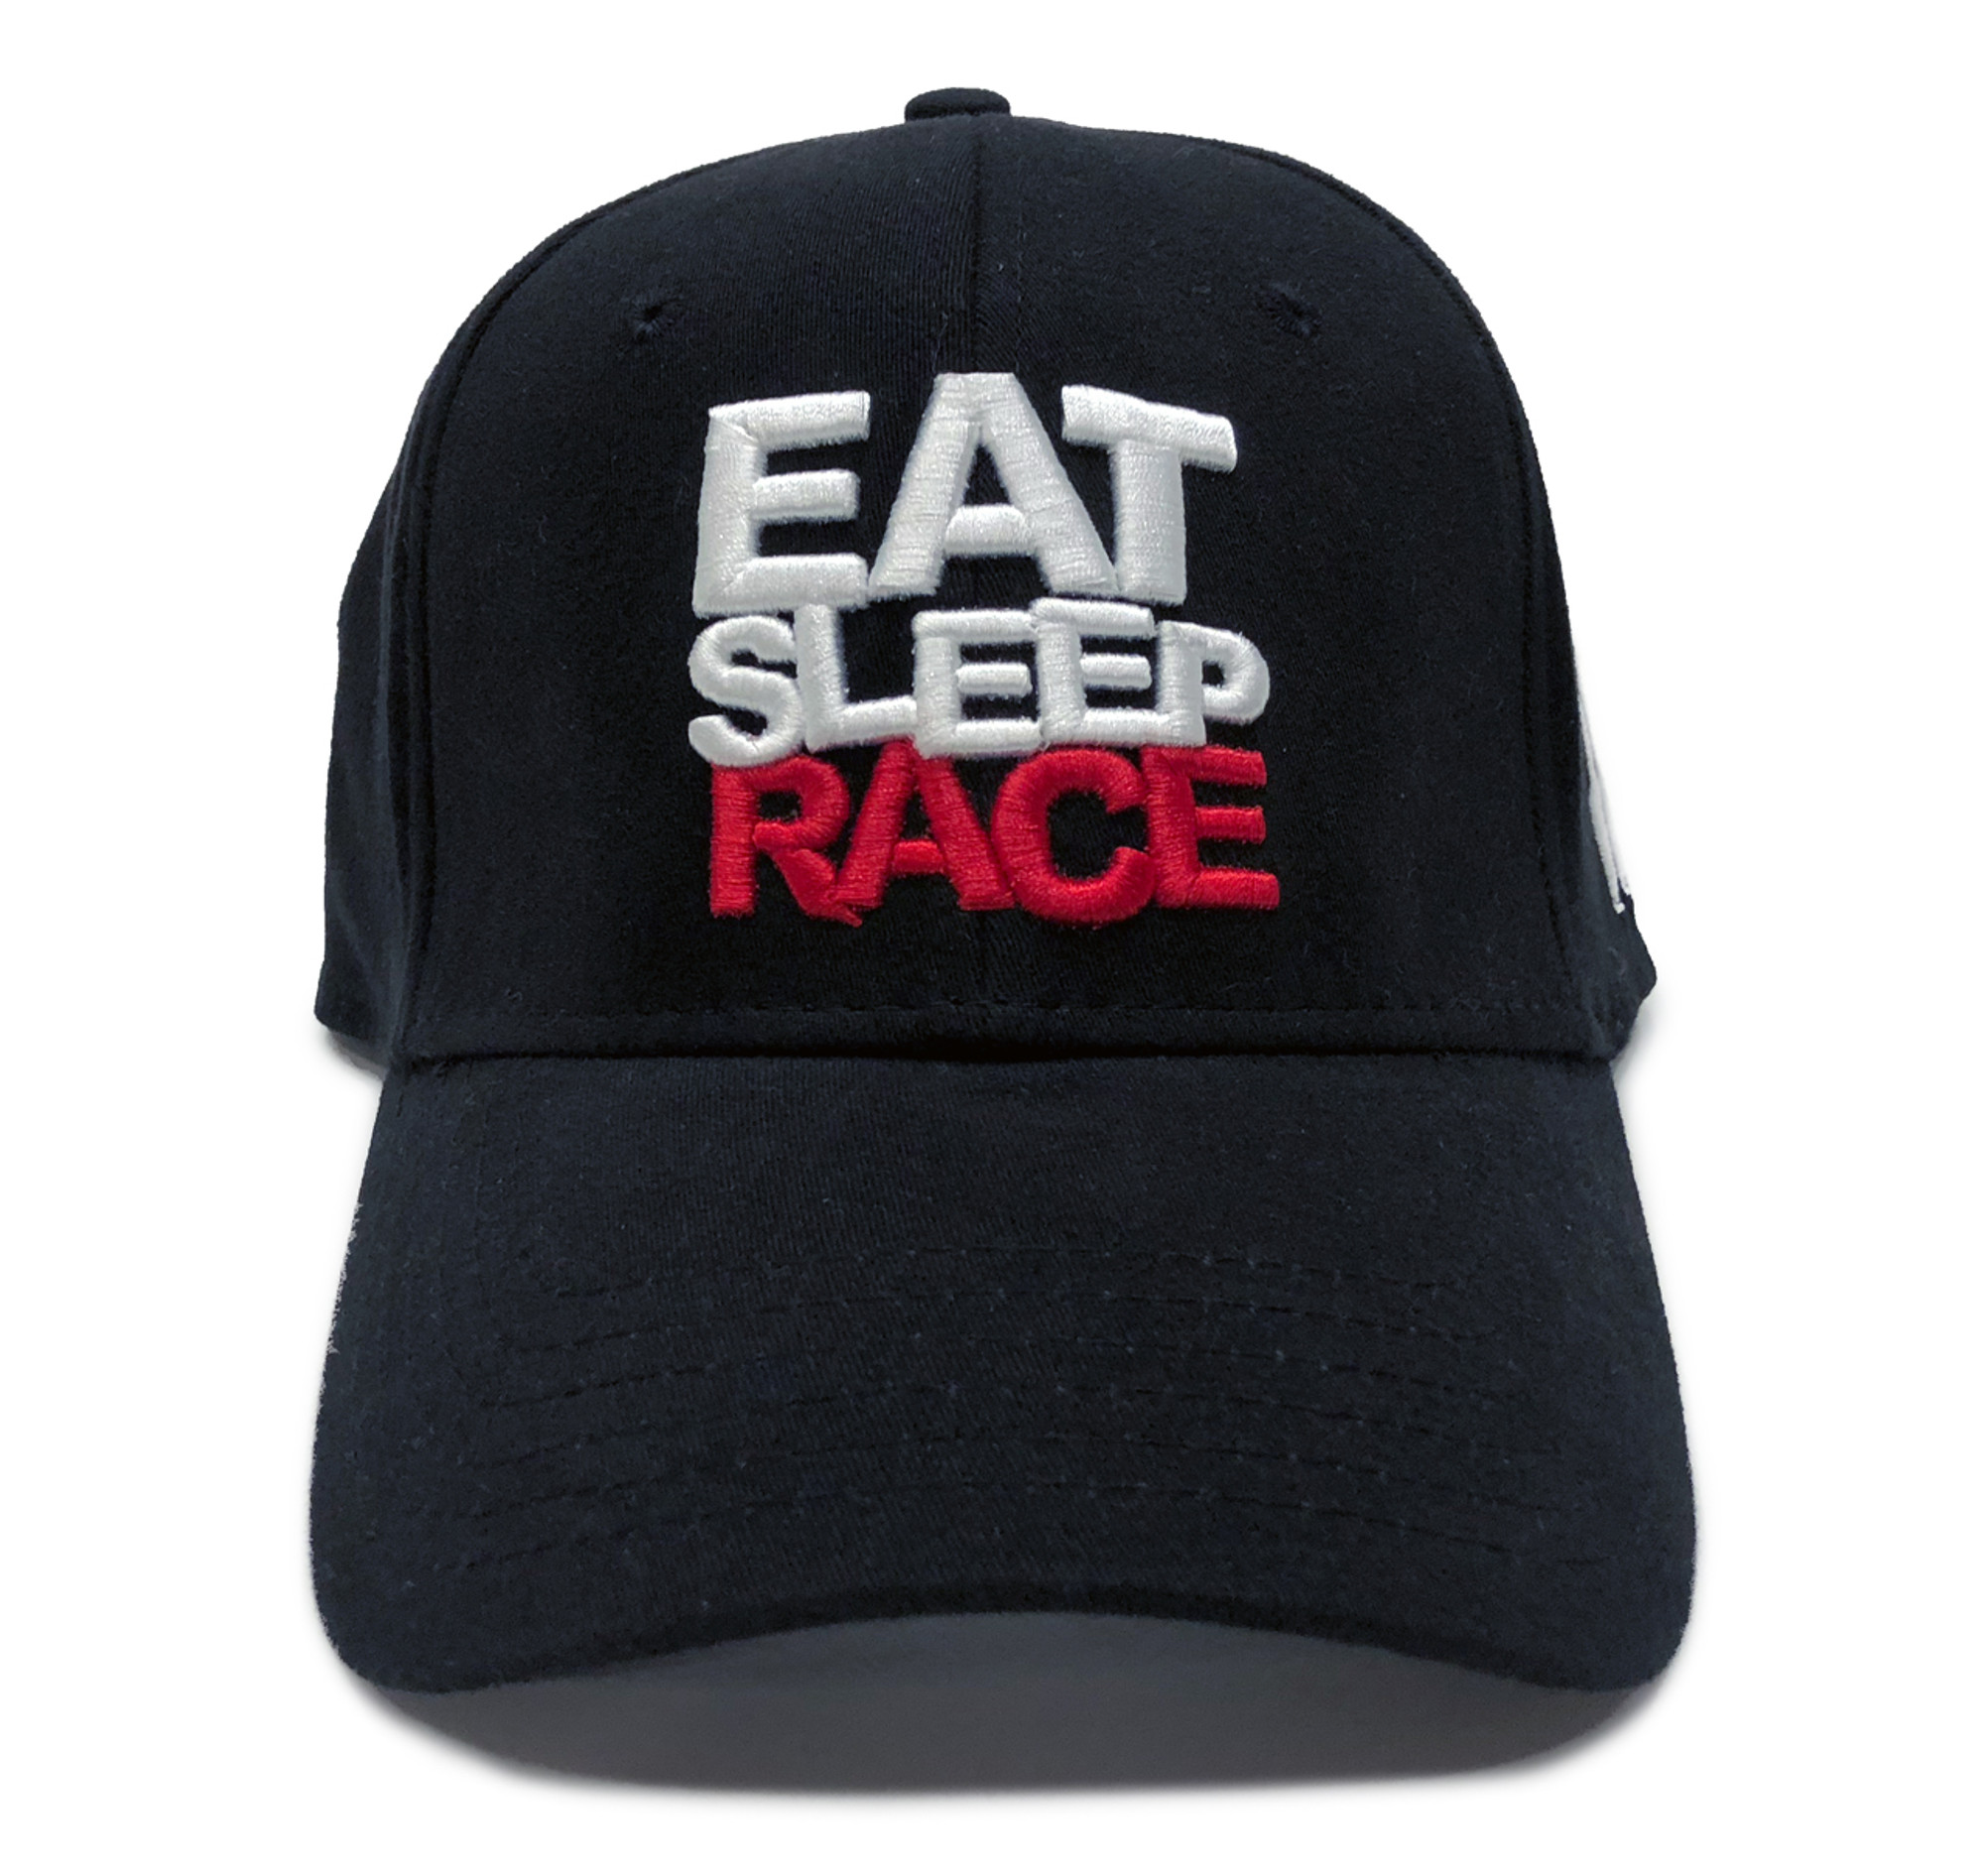 Logo team flexfit hat black eat sleep race racing lifestyle jpg 1280x1210 Black  flexfit 62d9e764cceb